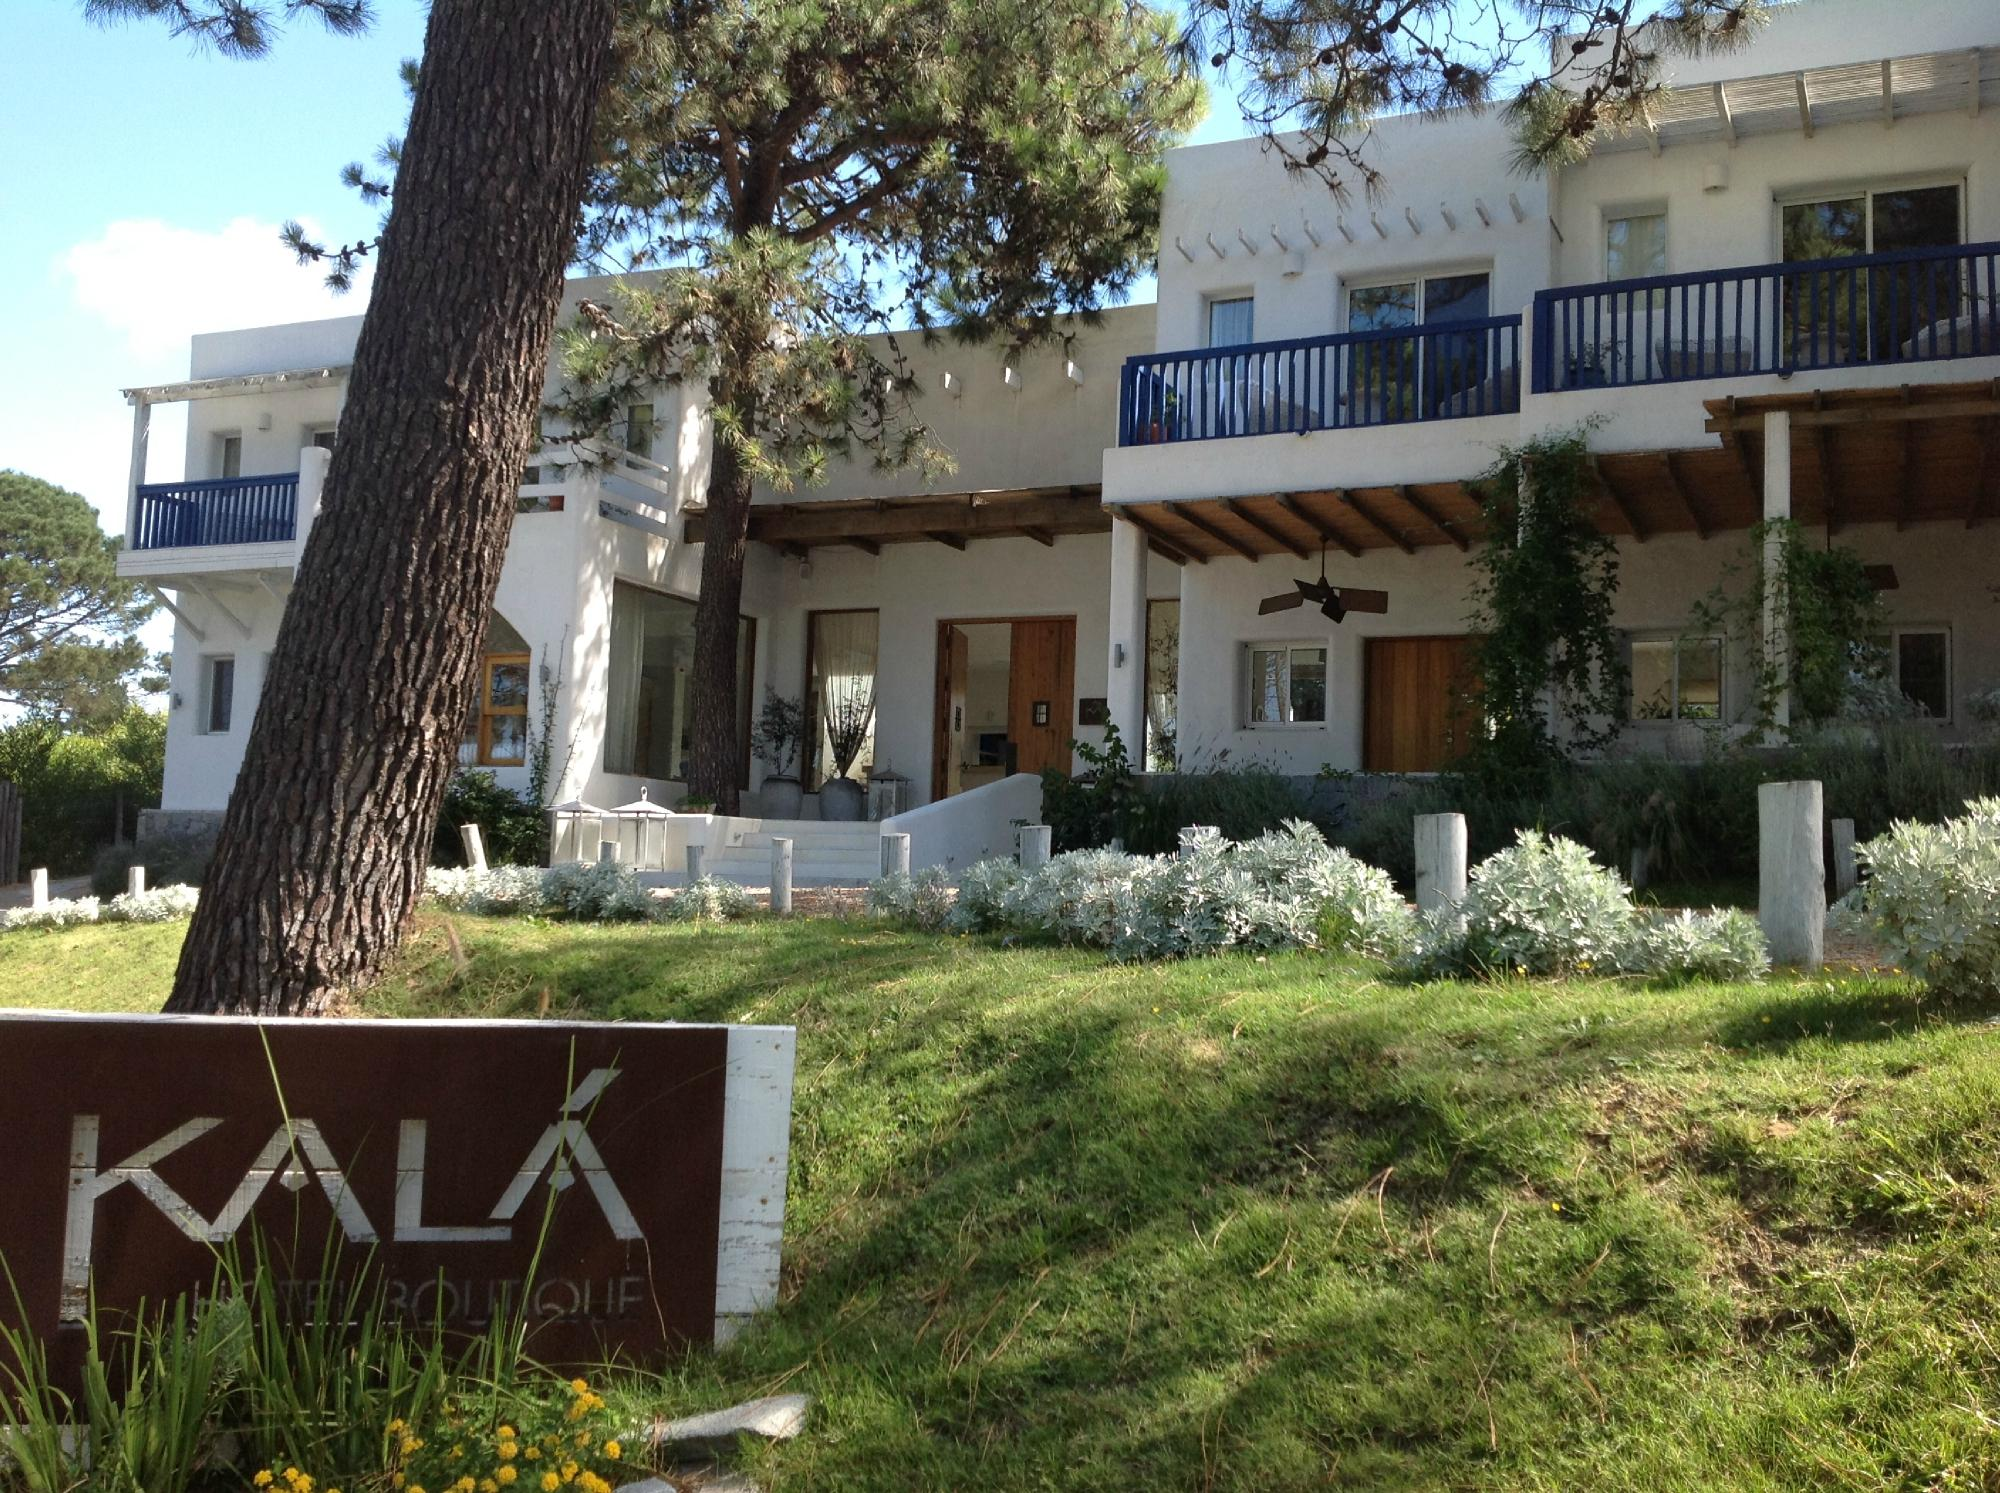 Kala Hotel Boutique